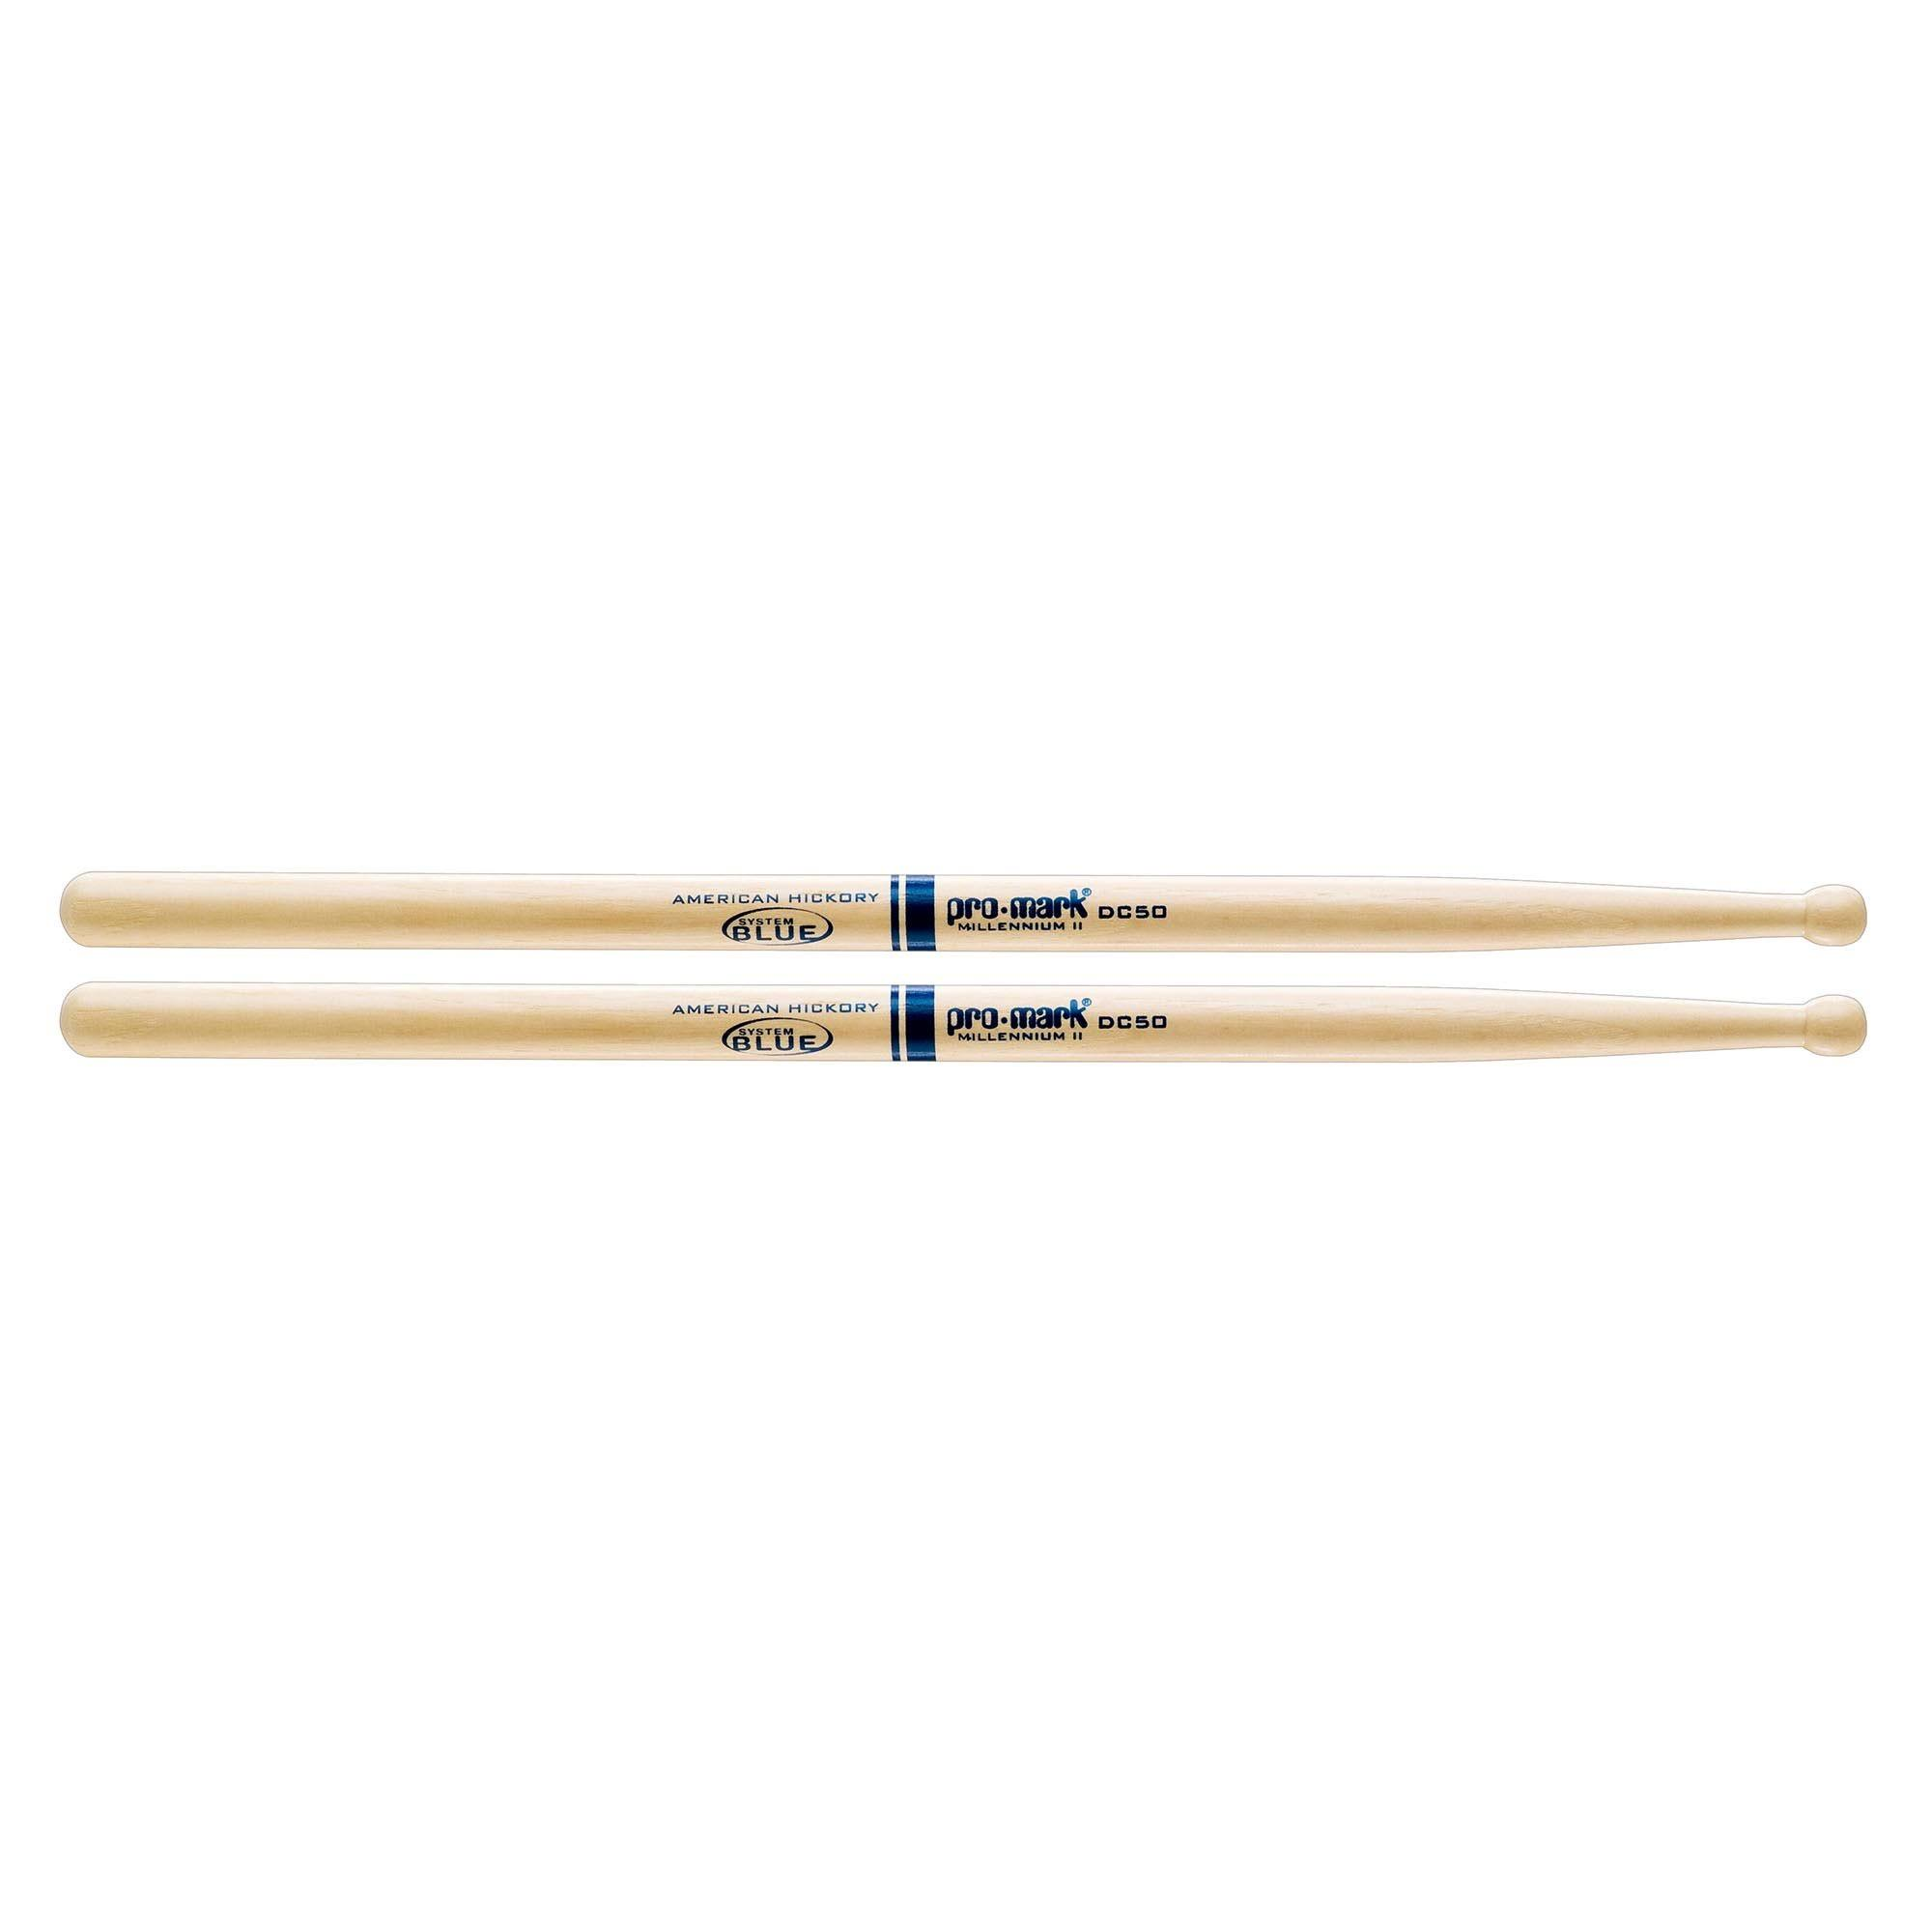 ProMark Hickory TXDC50W Wood Tip Marching Drumsticks